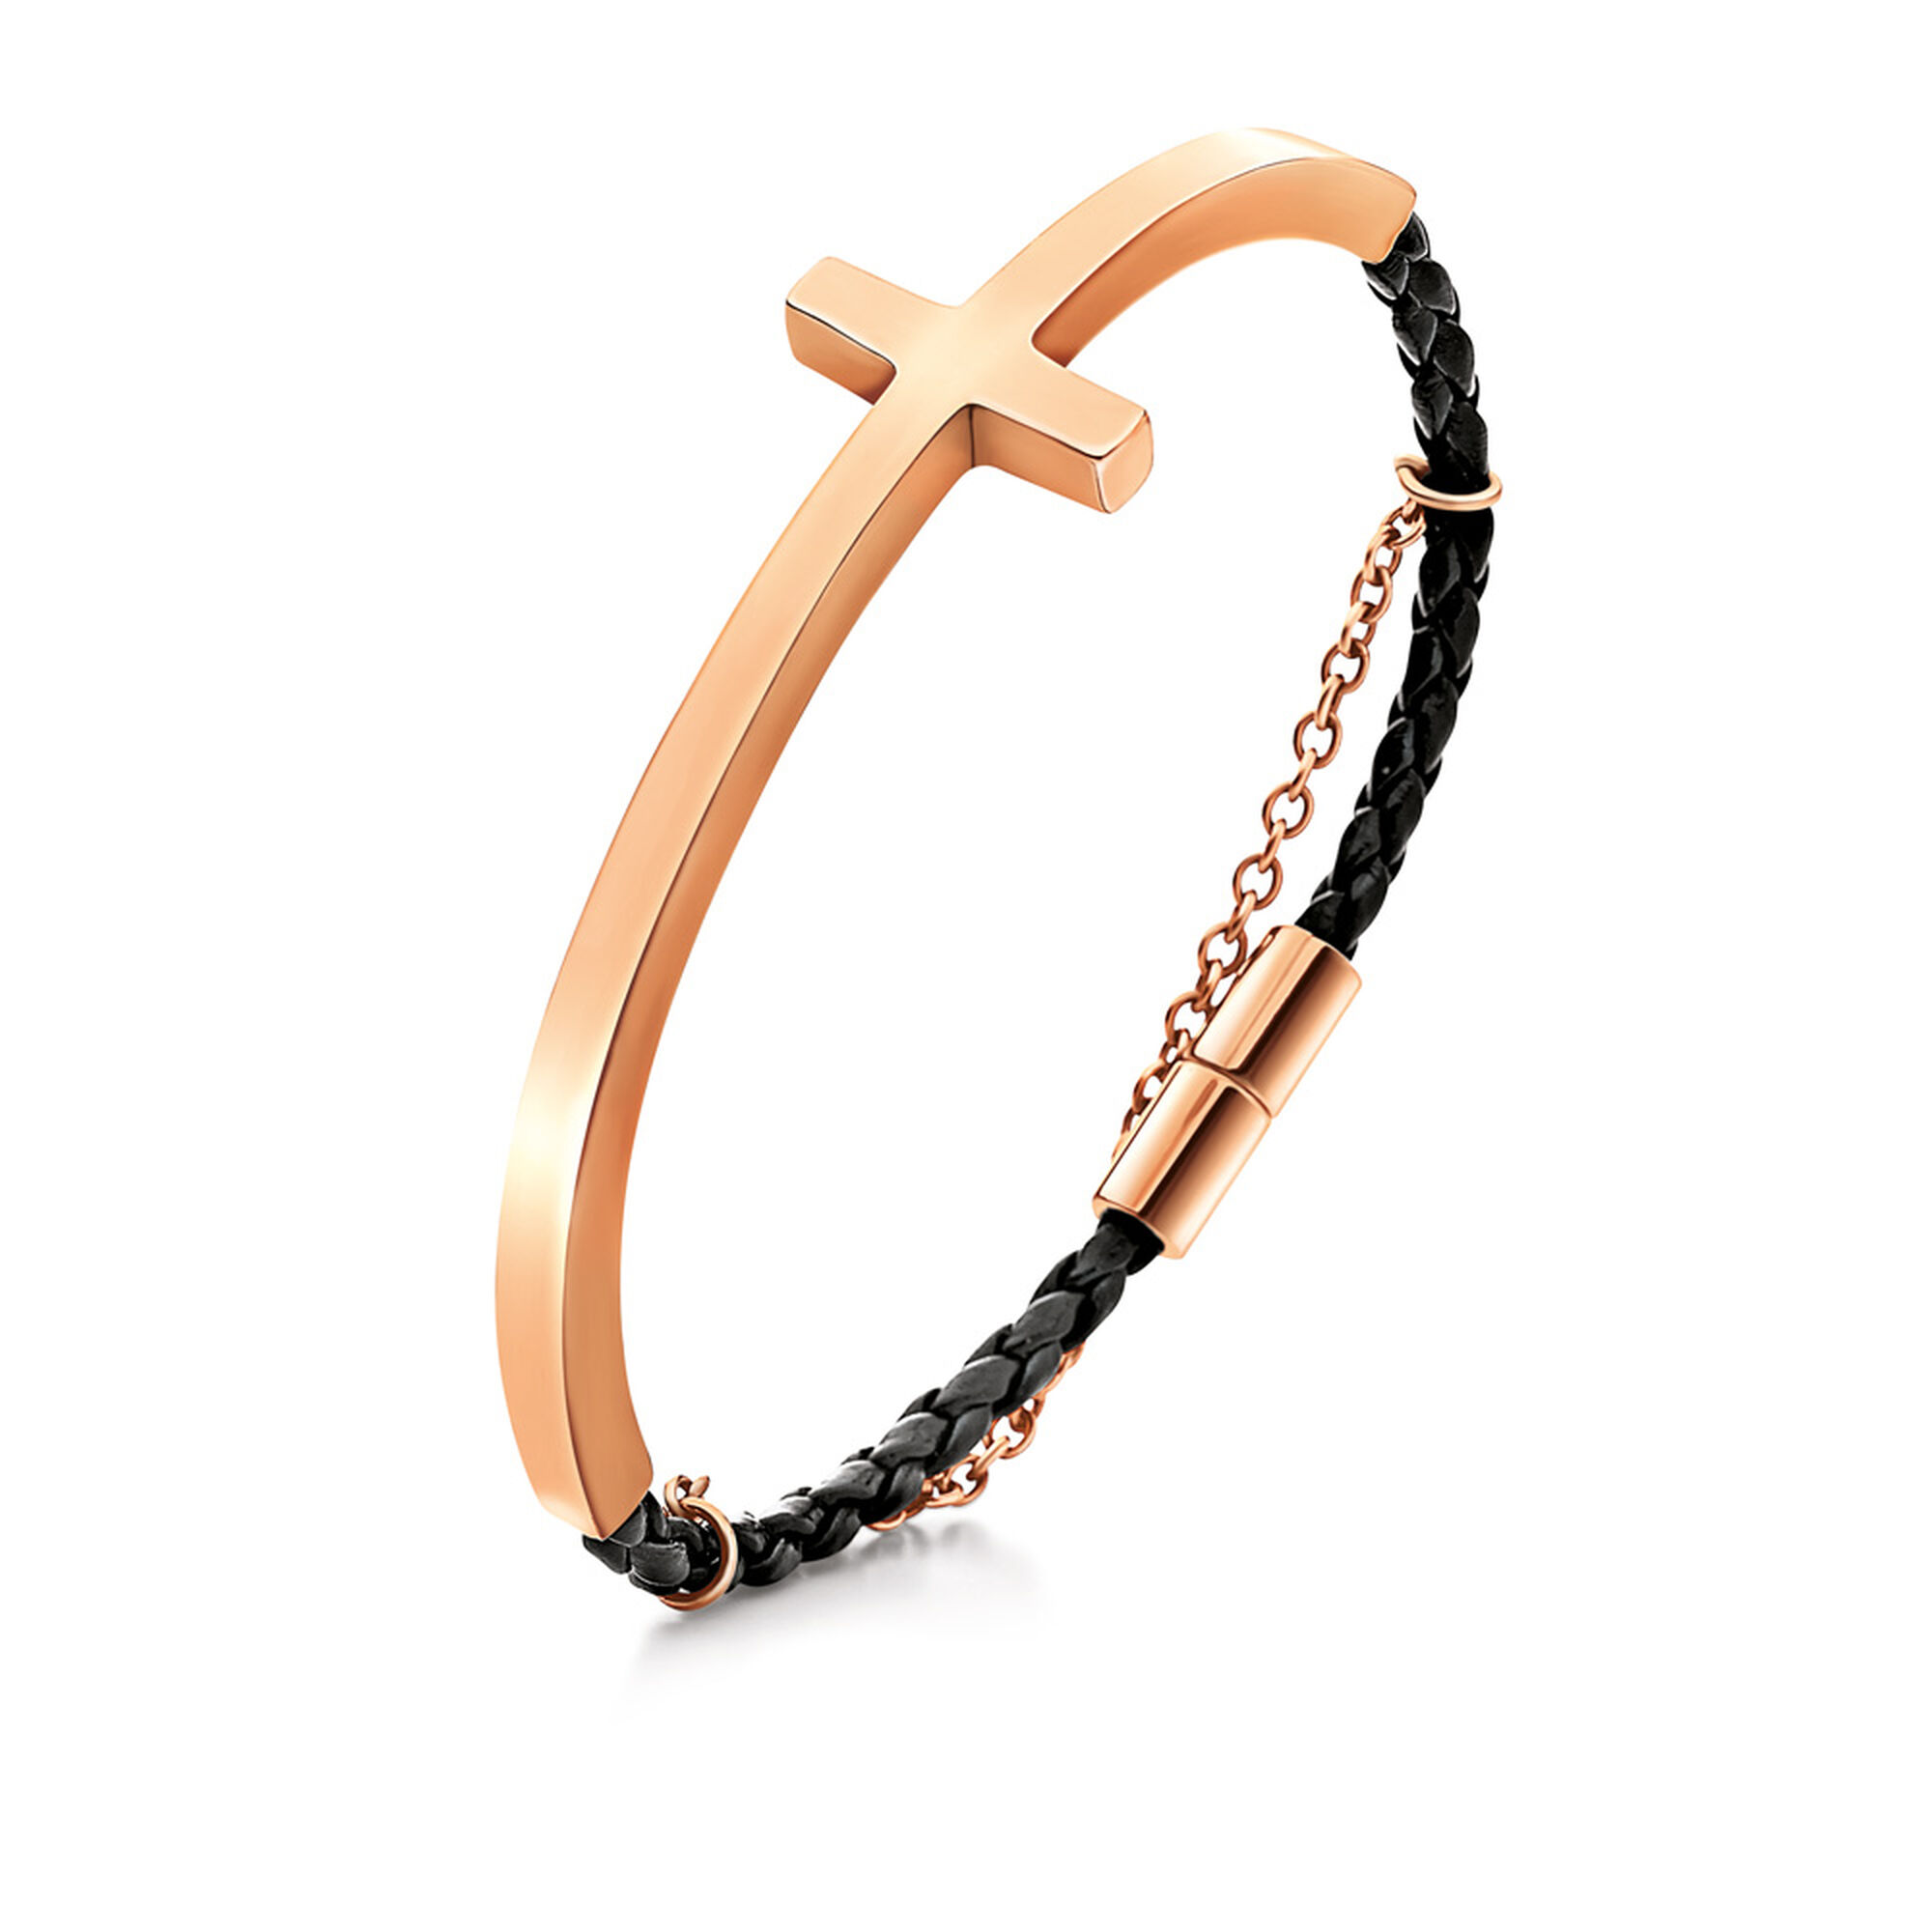 christian cross co bracelet products crosscharm lifestyle bangle charm bangles